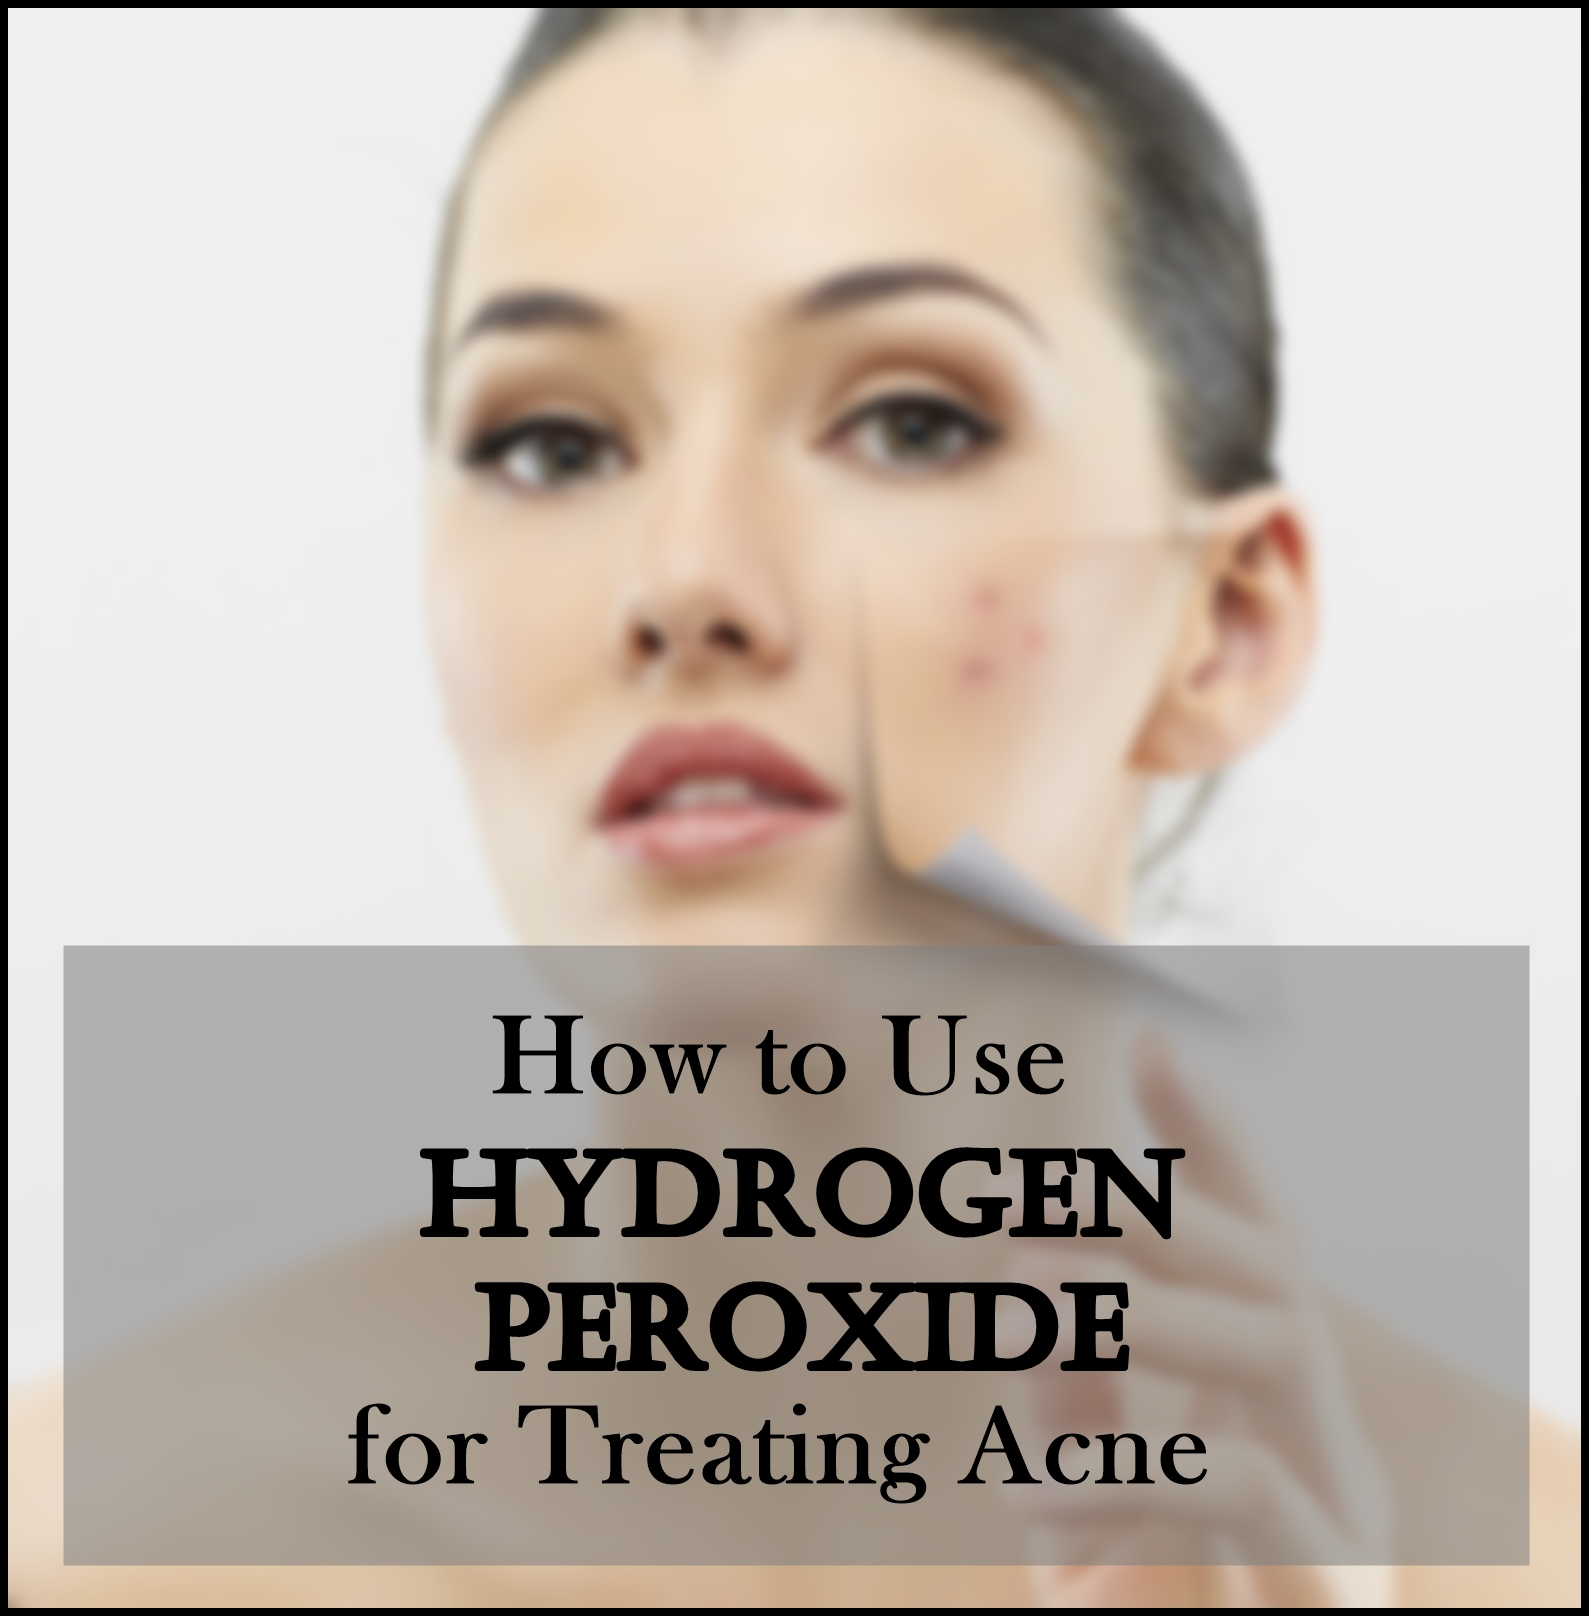 How to Use Hydrogen Peroxide for Treating AcneHow to Use Hydrogen Peroxide for Treating Acne